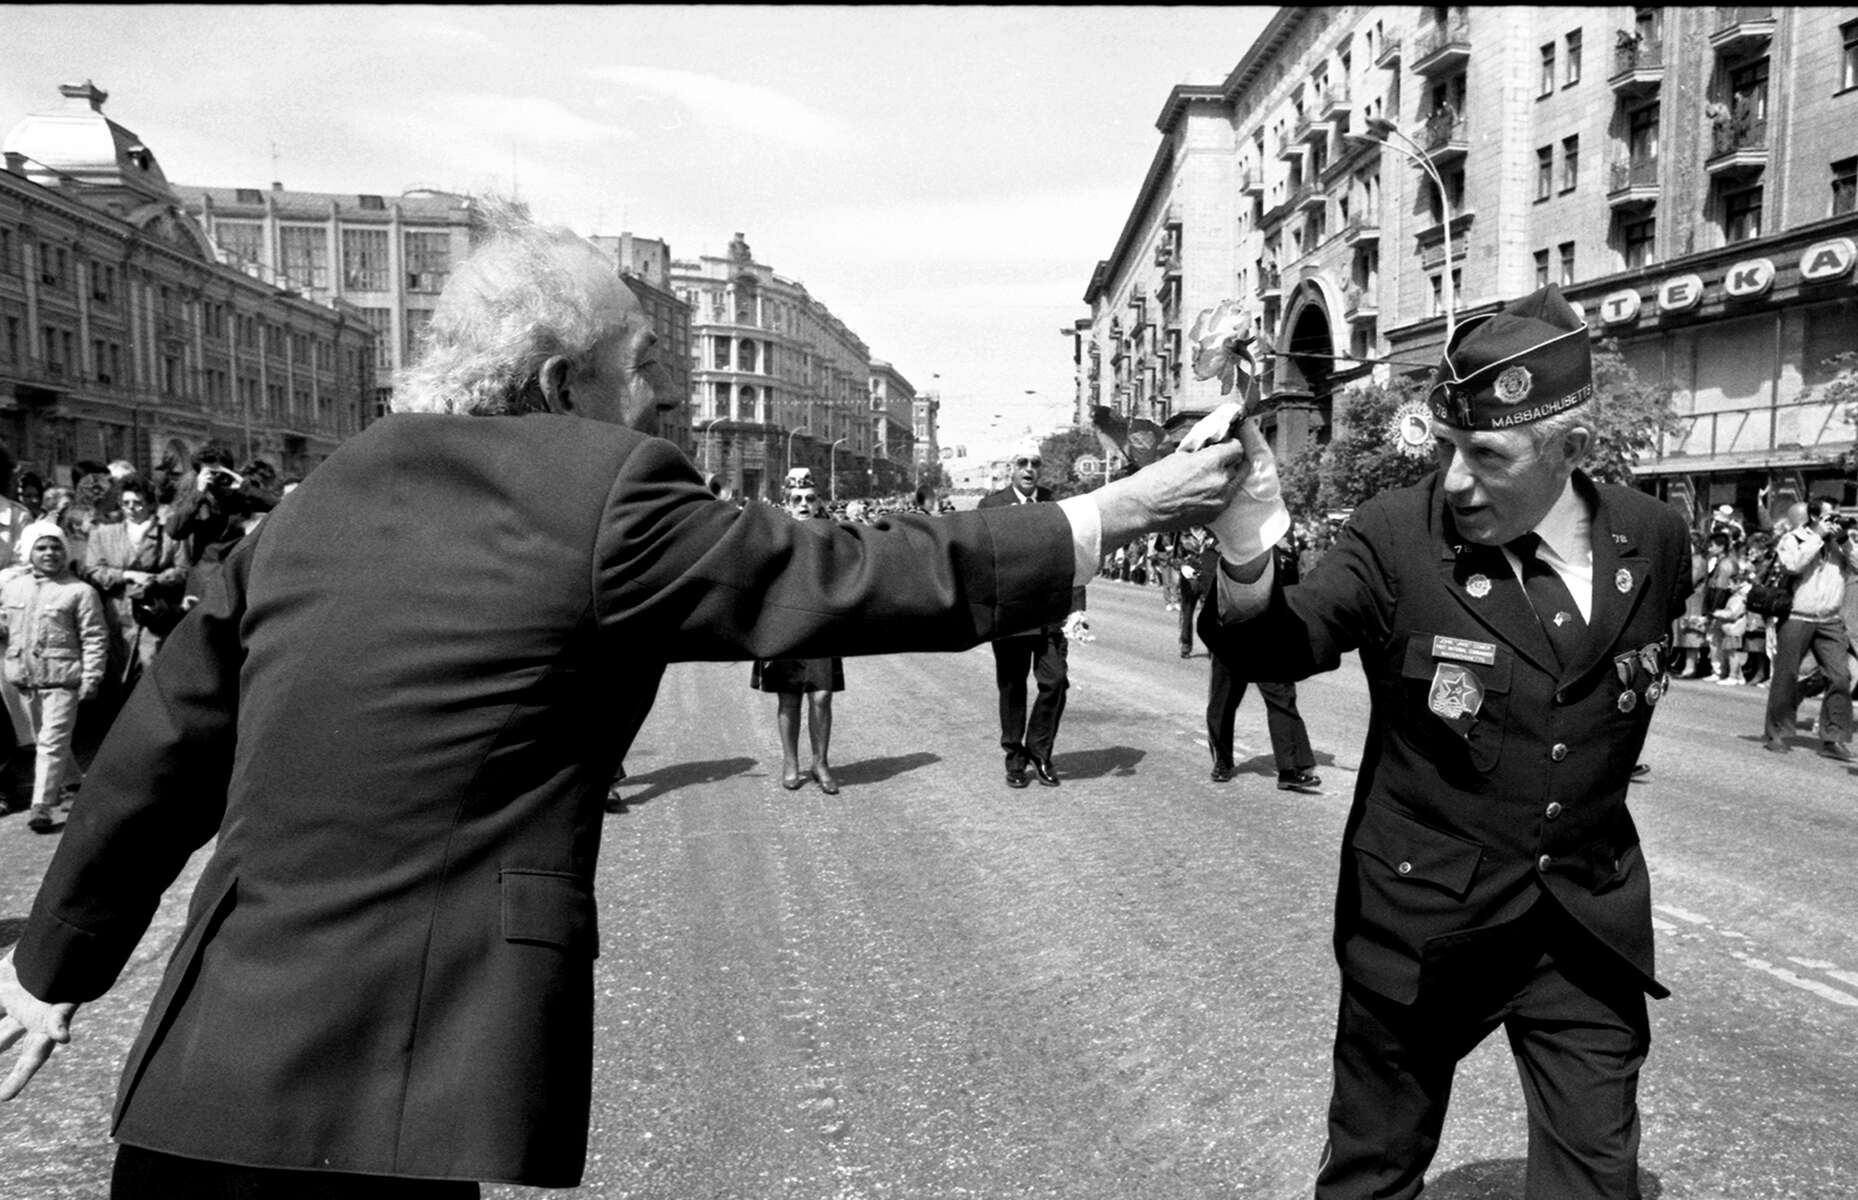 John P. {quote}Jake{quote} Comer, of Quincy, Past National Commander of the American Legion, takes a flower from a Russian citizen during the Victory Day Parade in Moscow in 1990. [Daily News and Wicked Local Staff Photo/Art Illman]